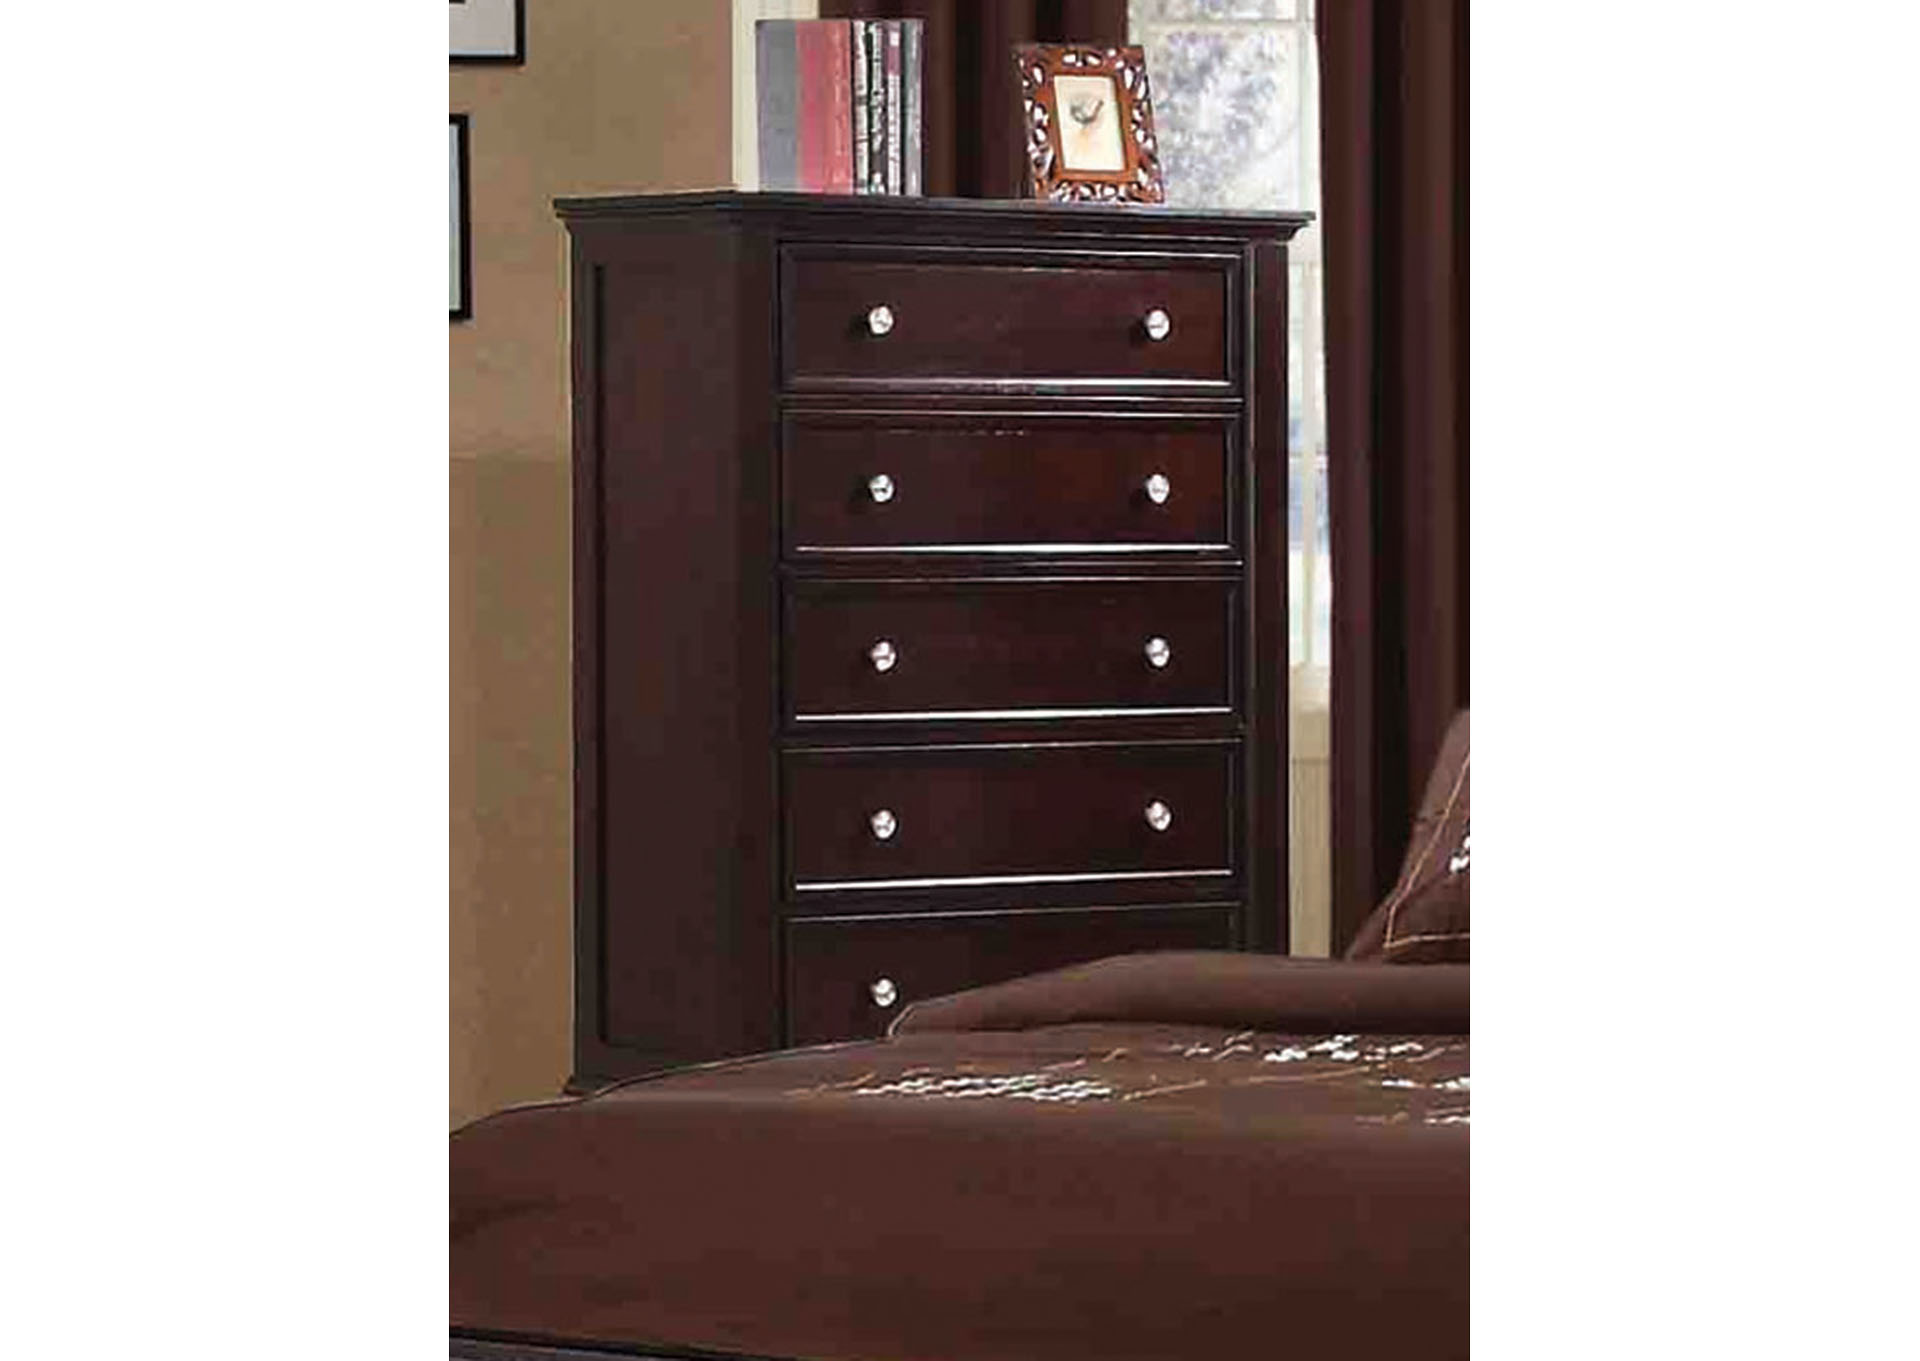 Sandy Beach Cappuccino 5 Drawer Chest,Coaster Furniture